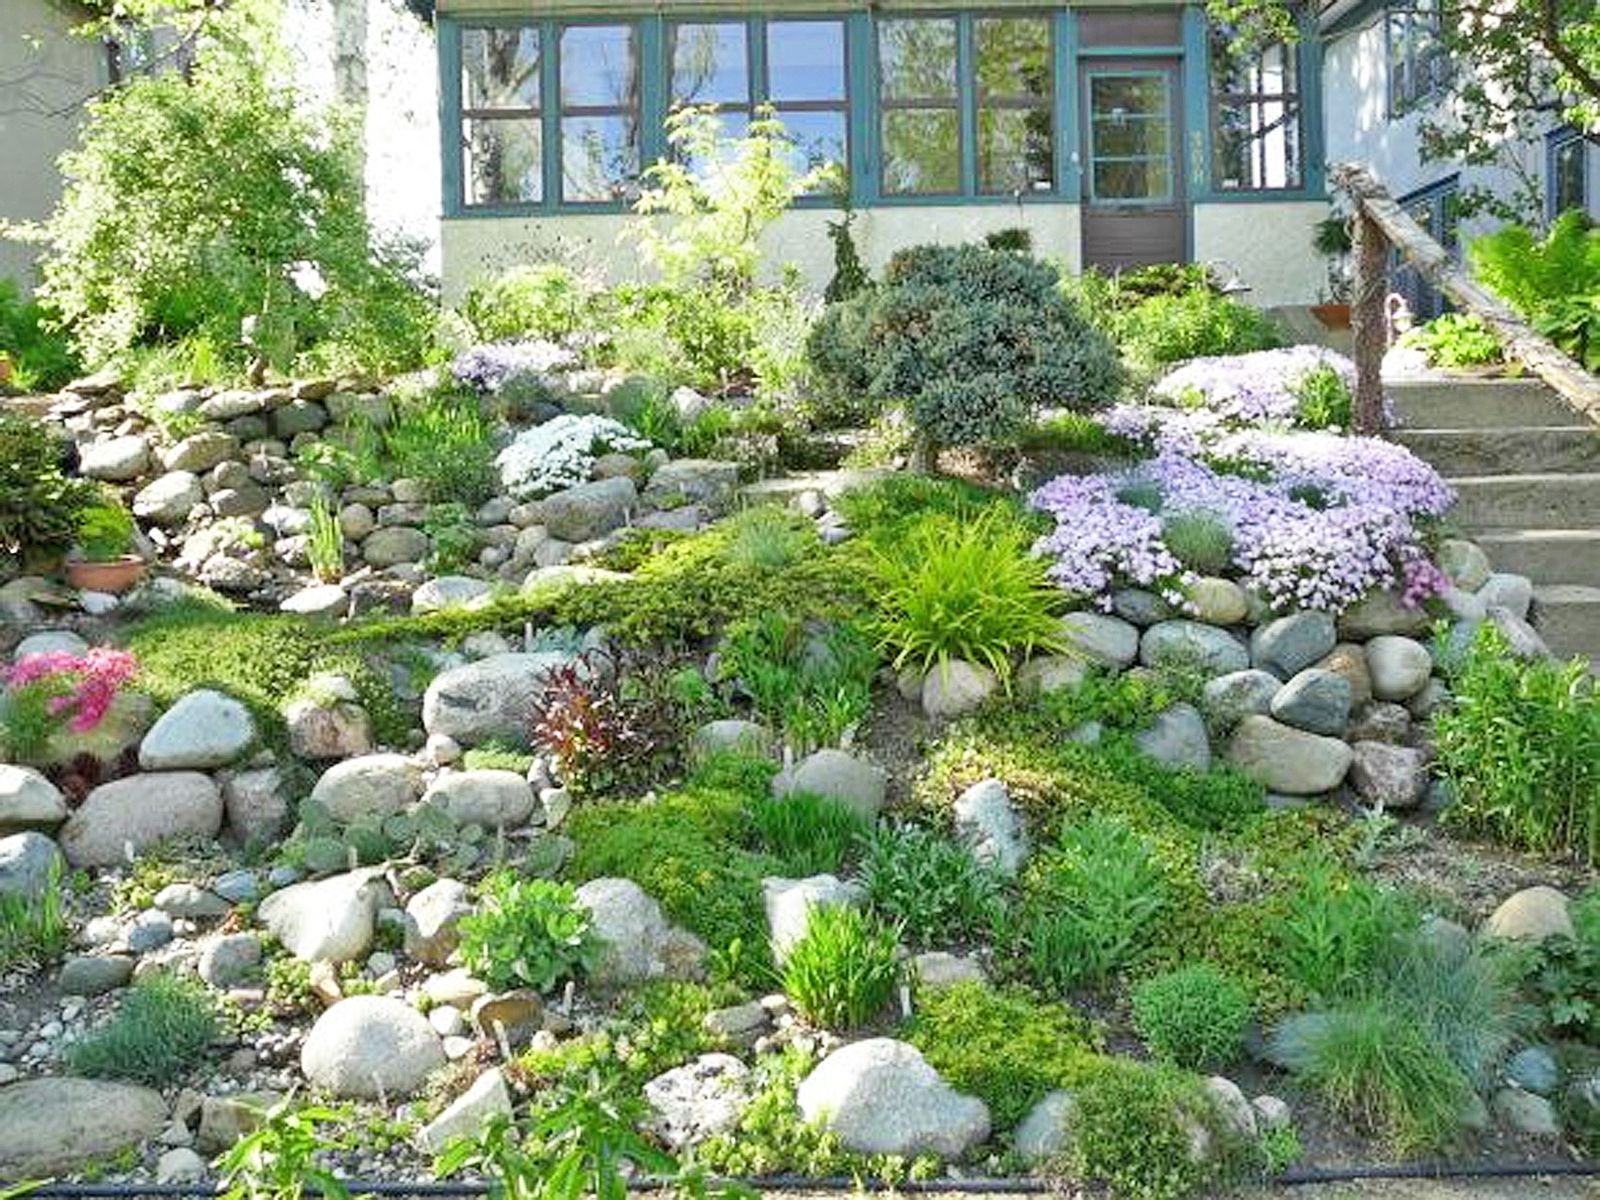 13 Hillside Landscaping Ideas To Maximize Your Yard throughout 15 Genius Ideas How to Improve Backyard Hill Landscaping Ideas